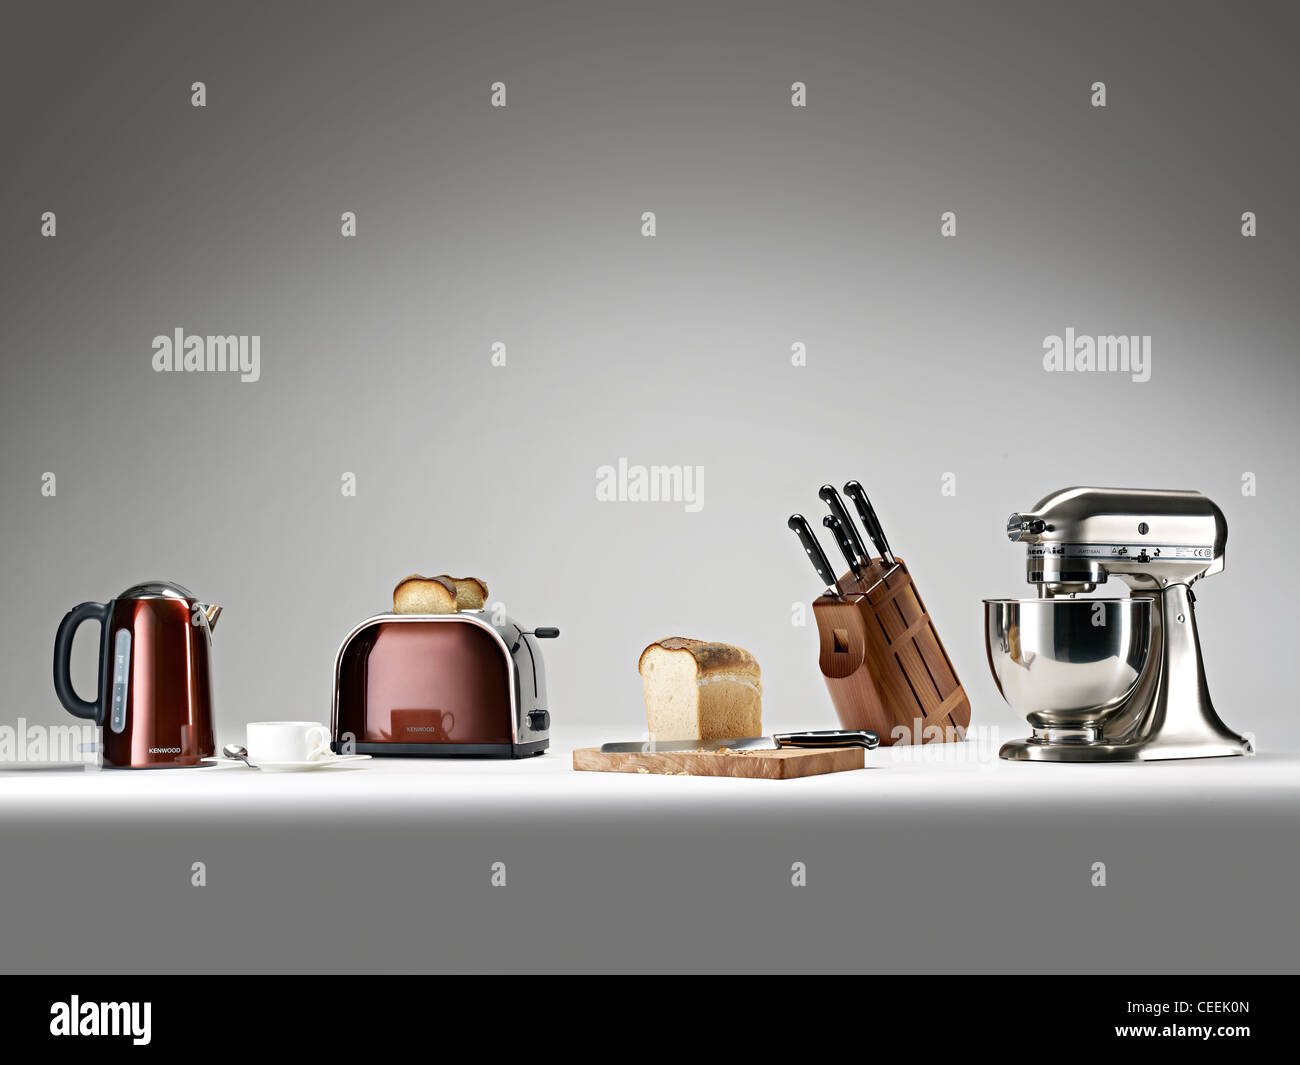 selection of kitchen appliances in a row - Stock Image